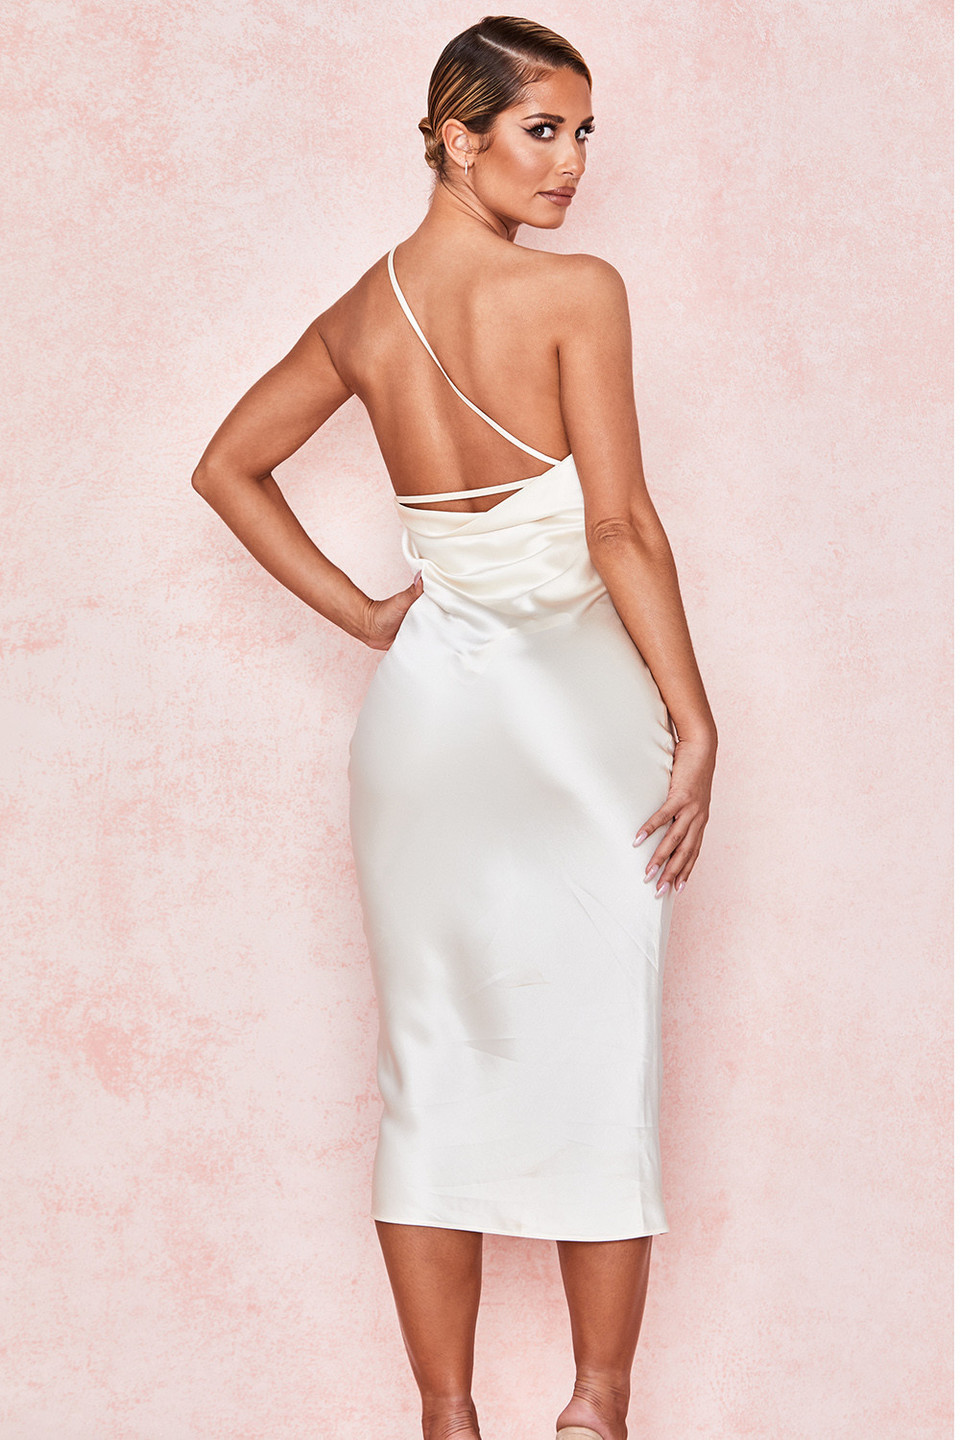 Nikita Ivory Satin One Shoulder Dress